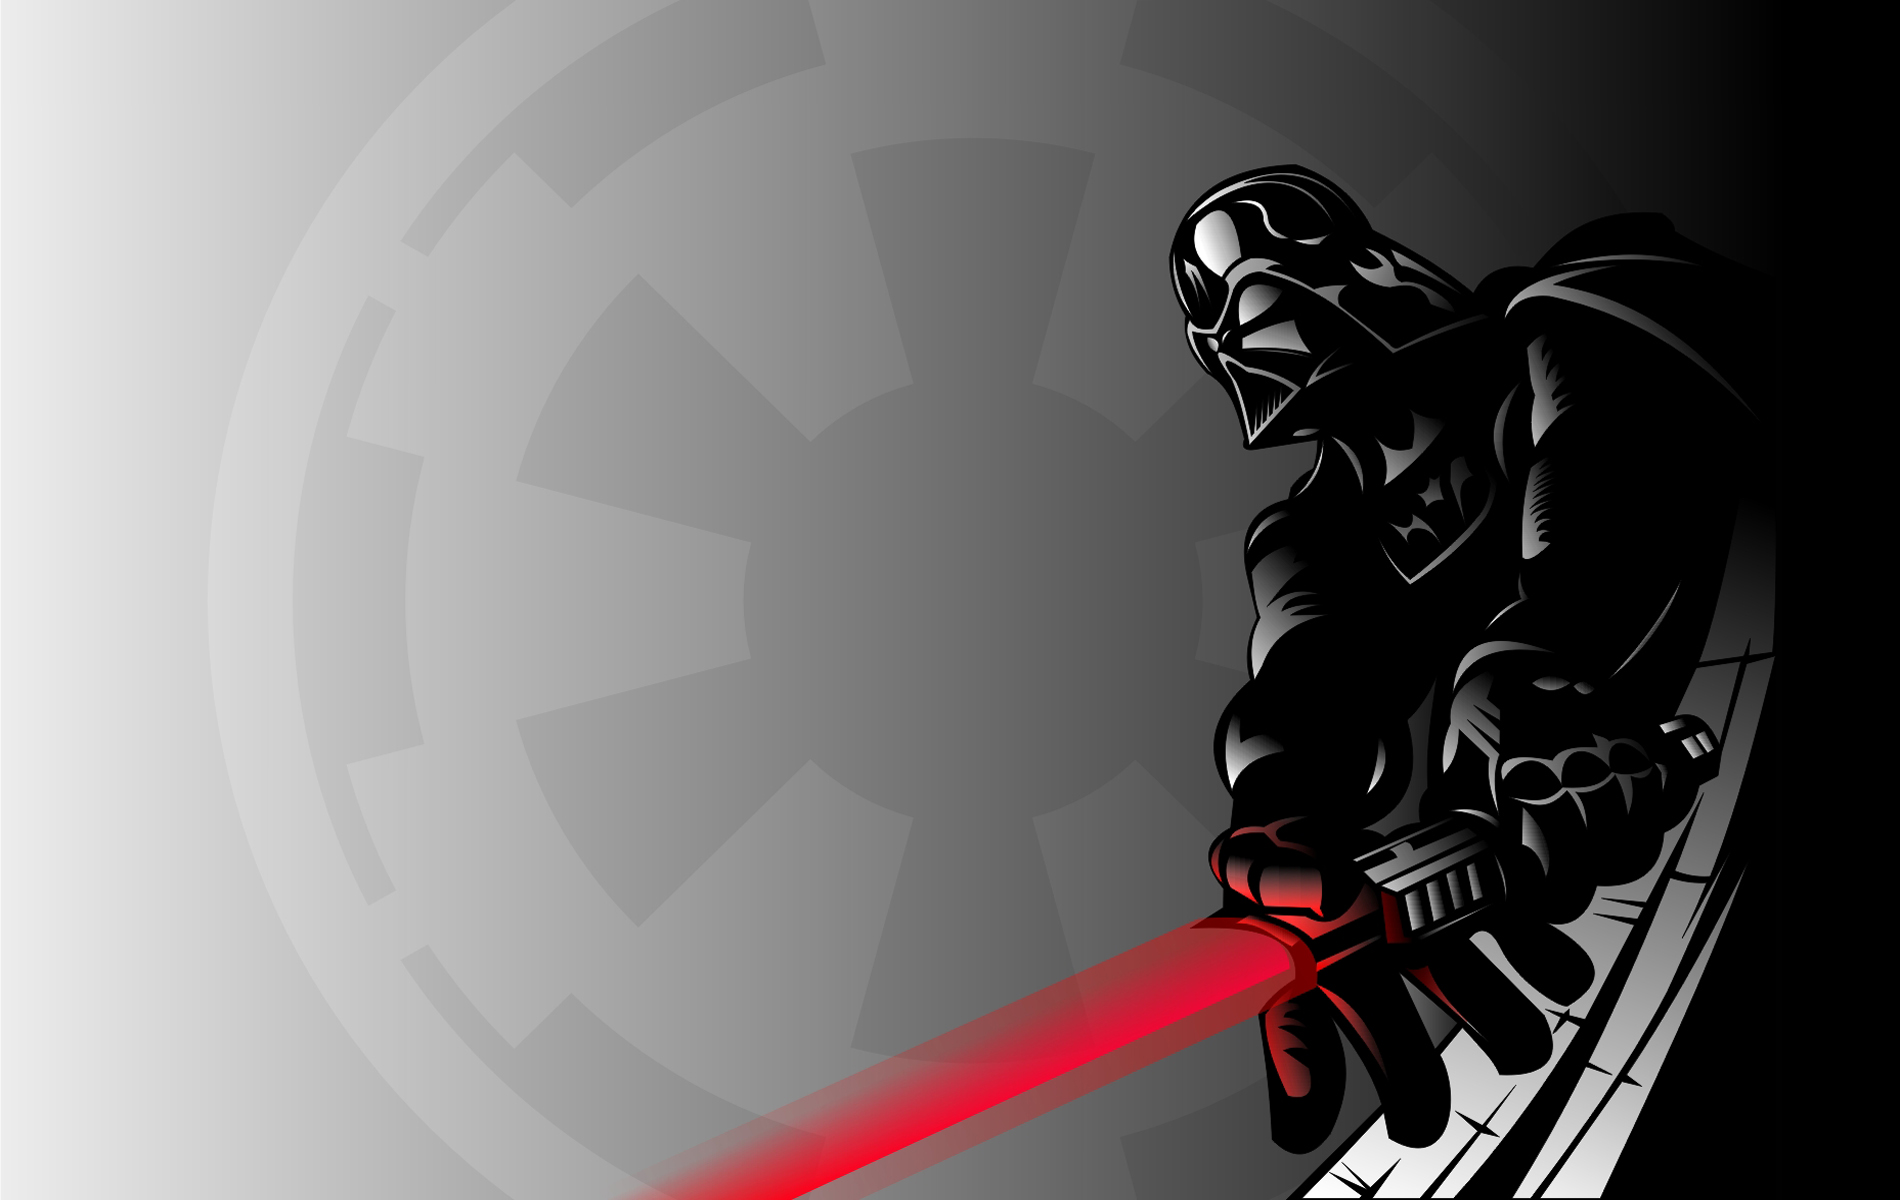 STAR WAR WALLPAPER July 2012 1900x1200